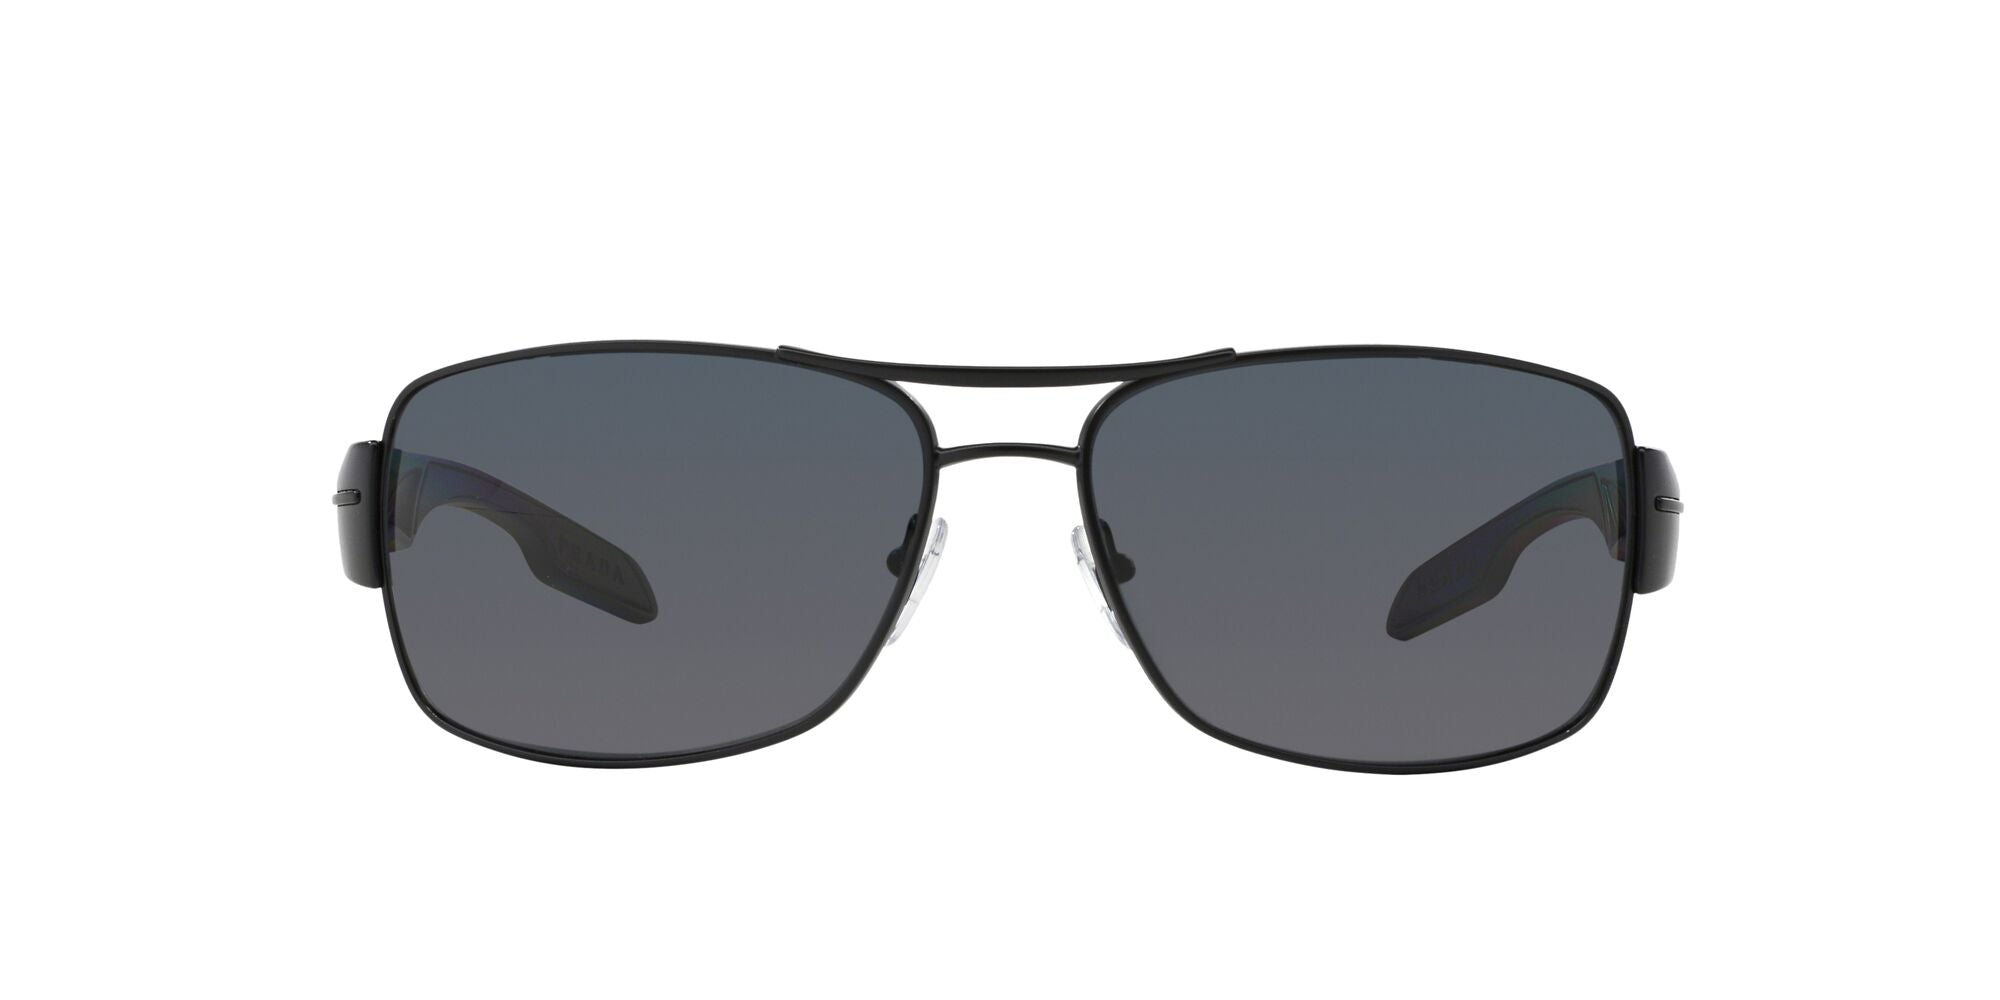 DEMI-SHINY BLACK | POLARIZED